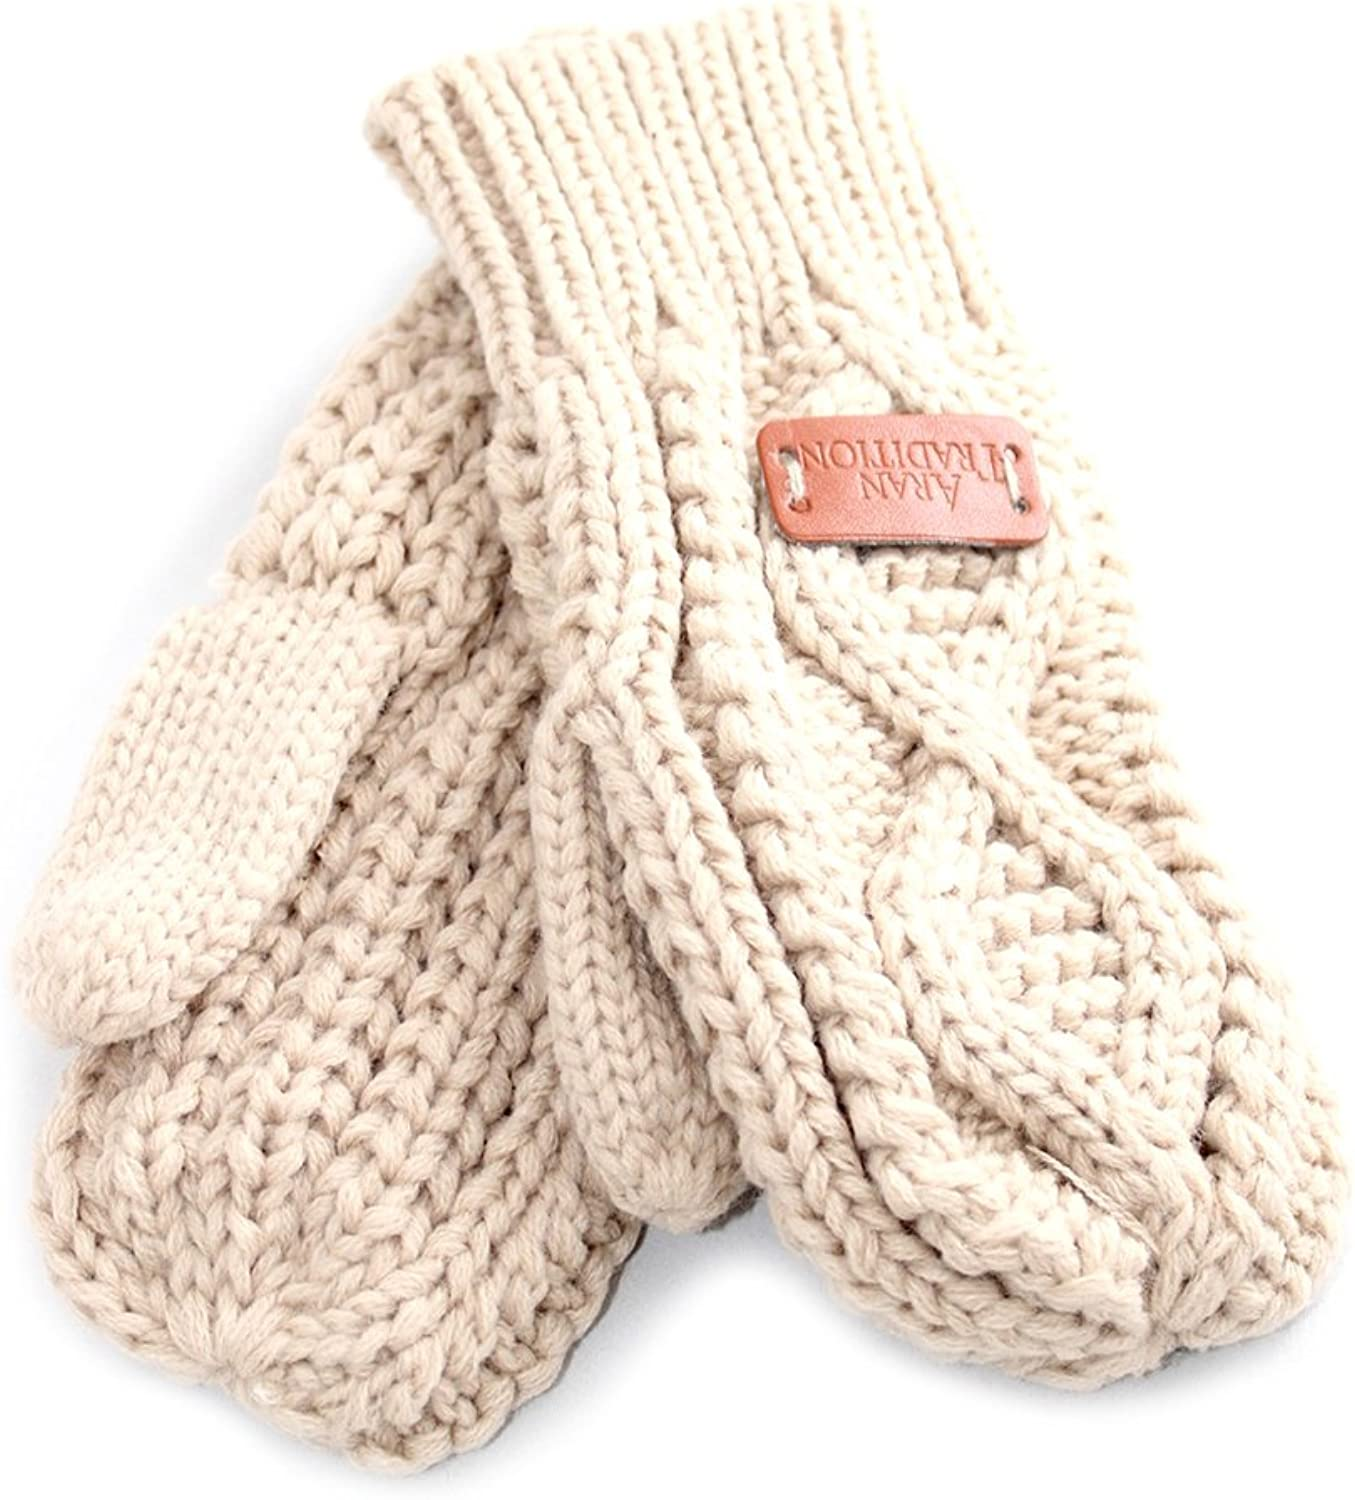 Aran Traditions Oatmeal Beige Cable Knit Mitts